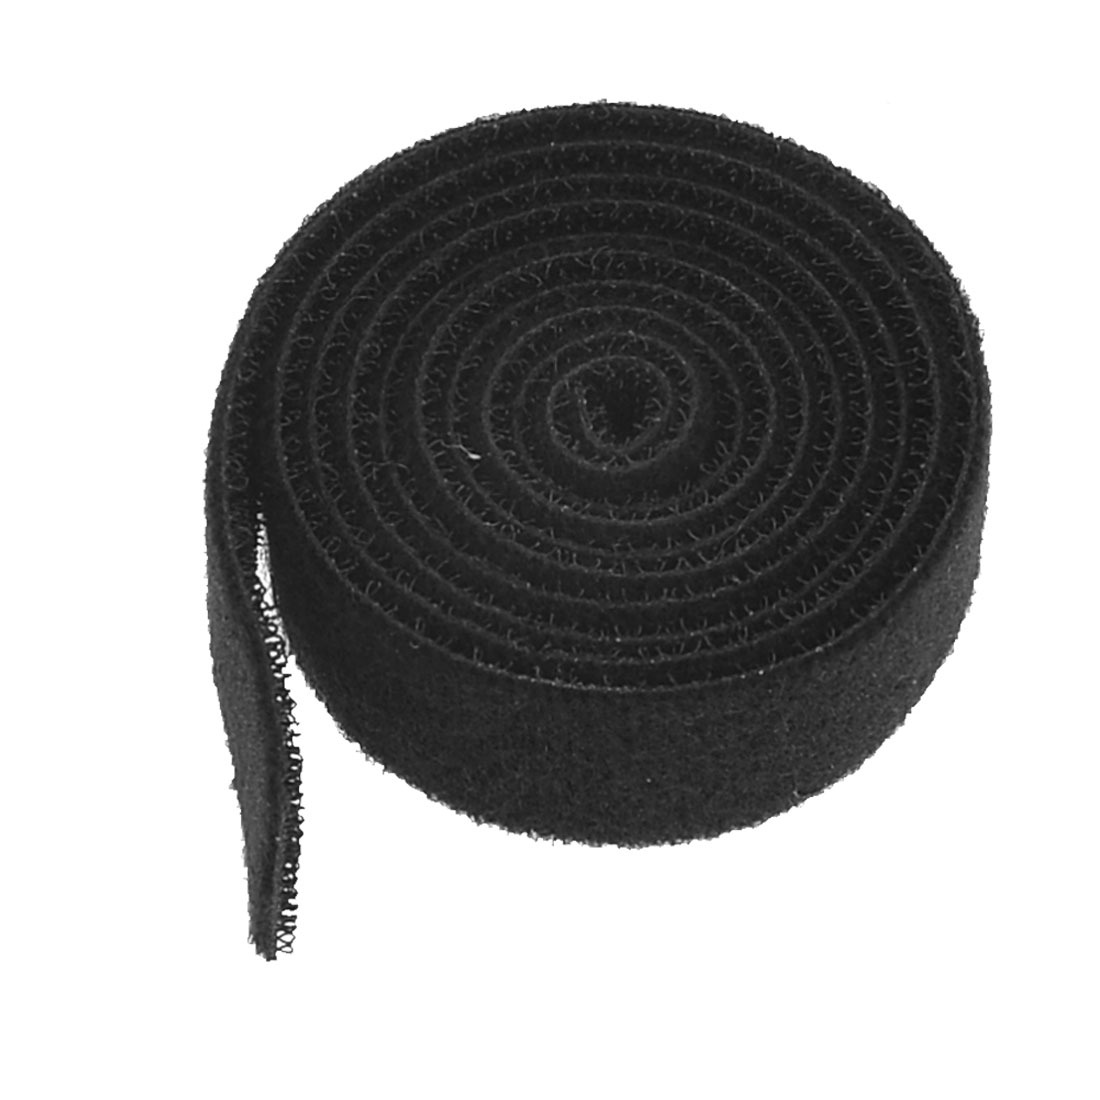 100cm Length Black Hook Loop Tape Cord Strap for Cable Wire Organizer